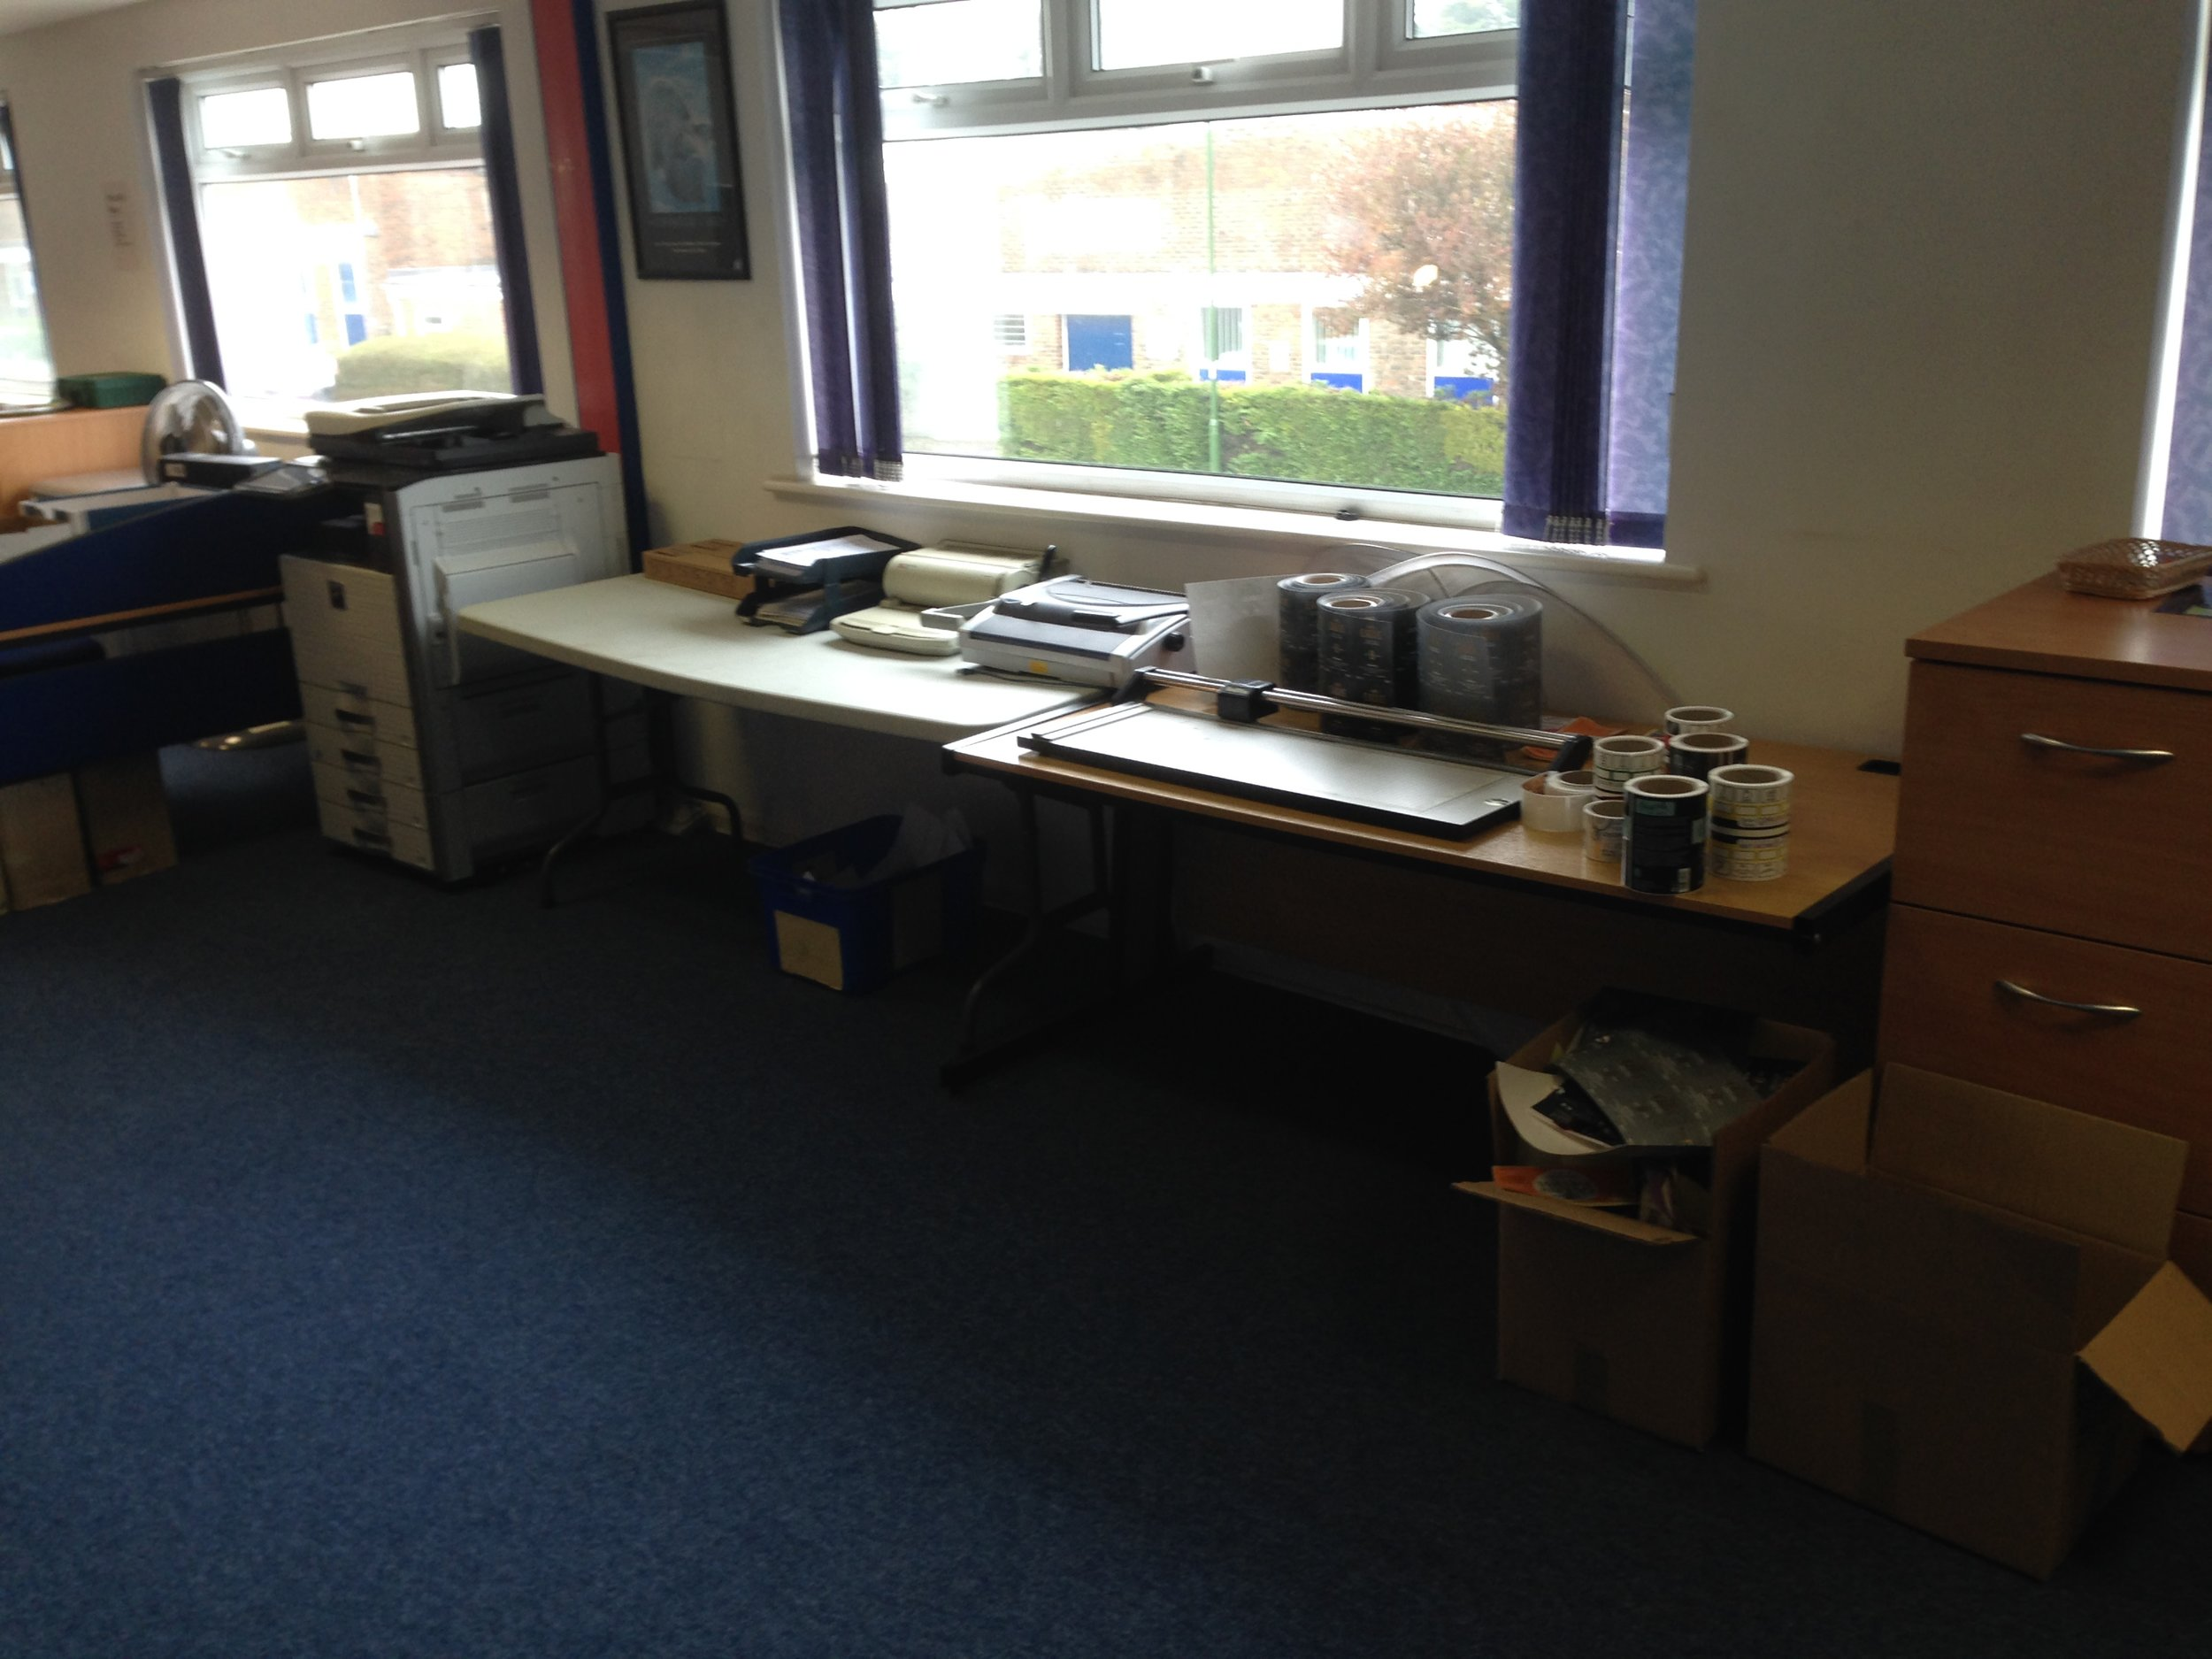 Office remodelling - design and refit - Littlehampton manufacturing sector-12